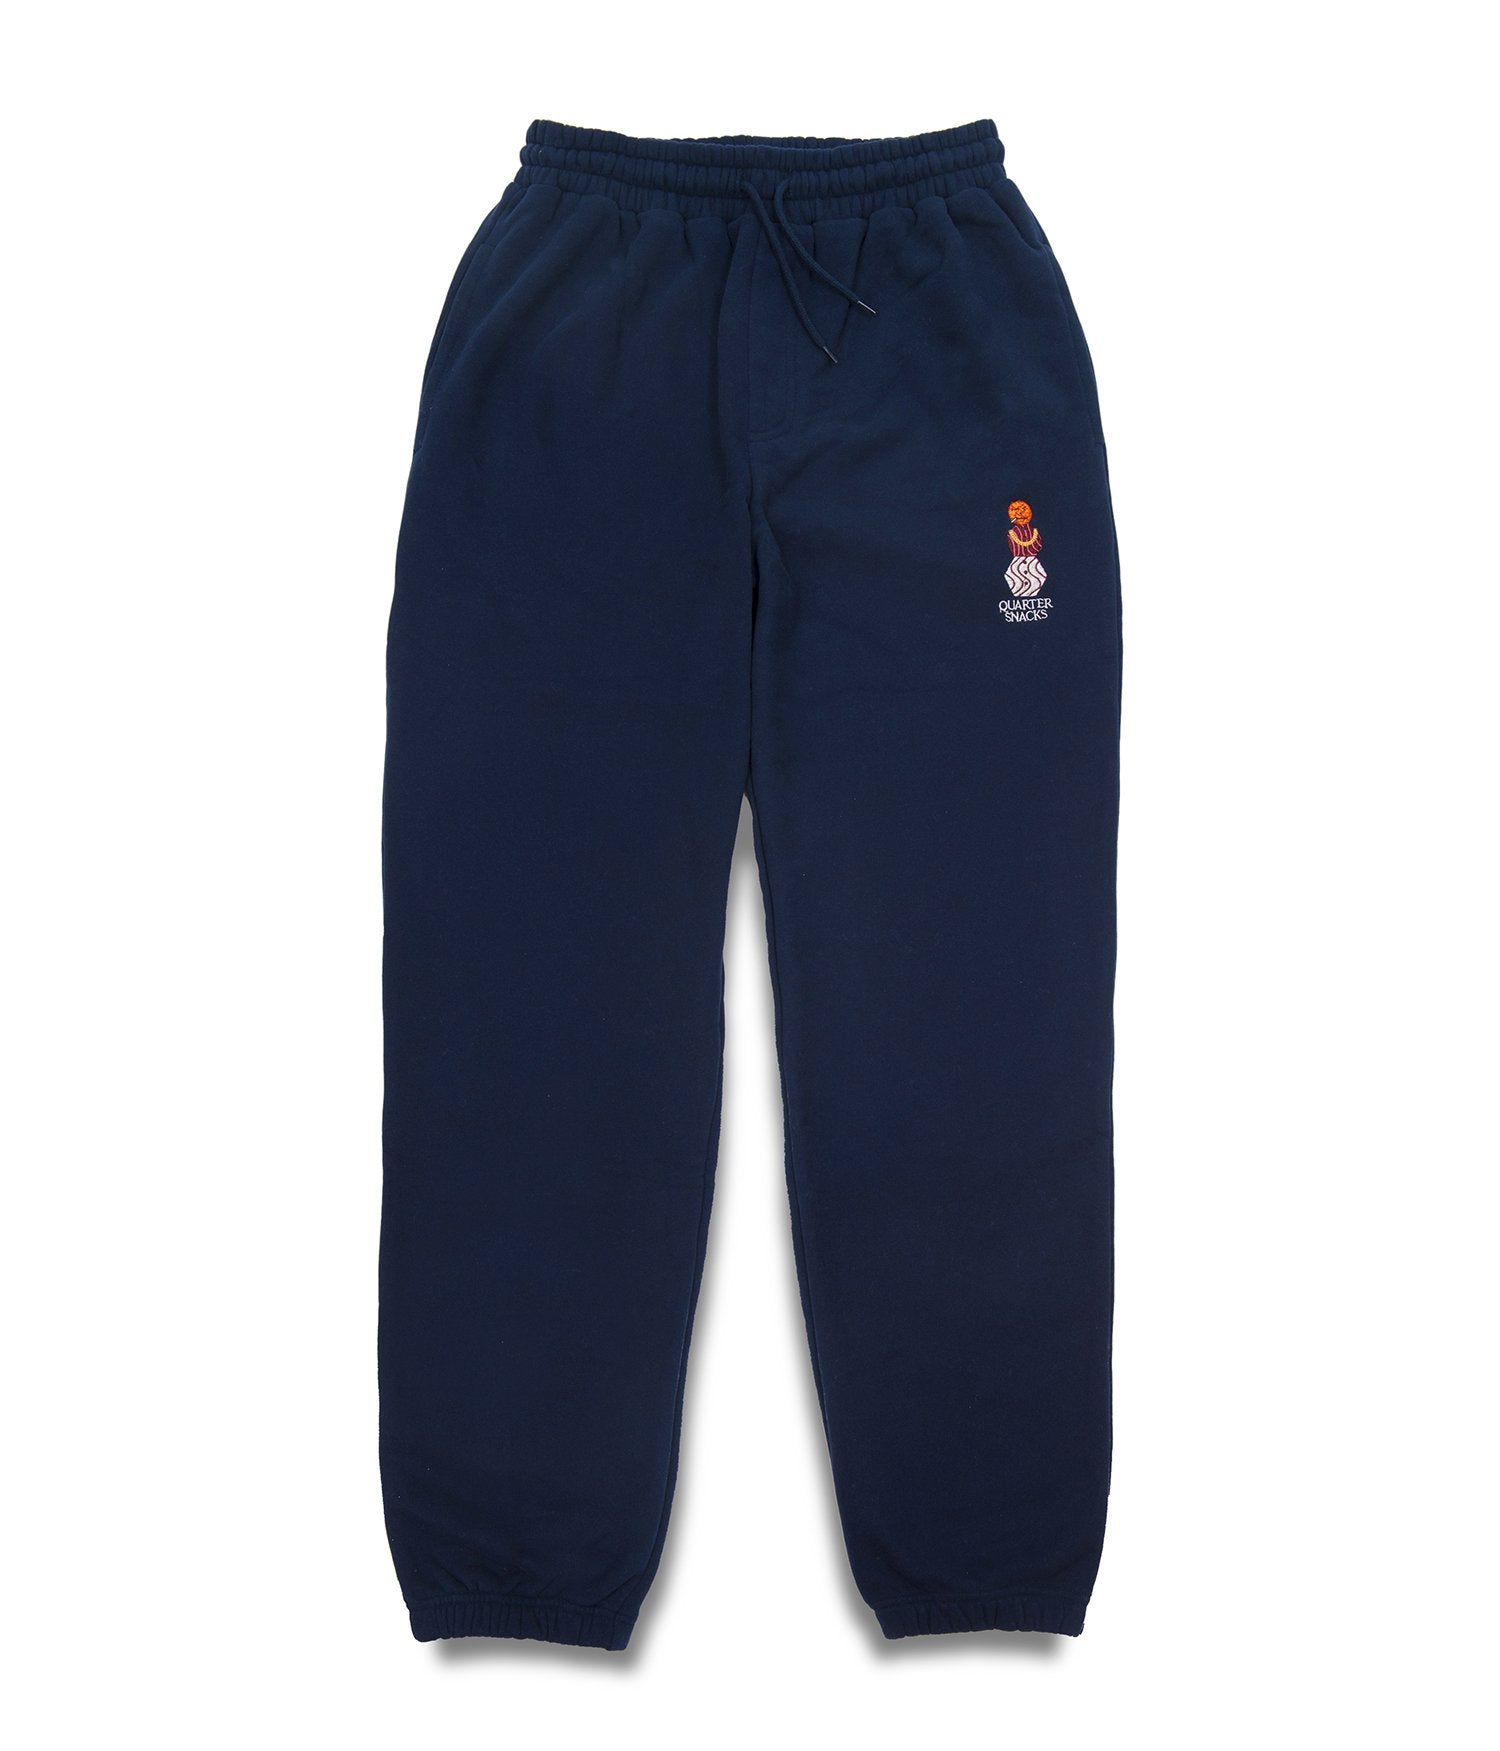 Quartersnacks Snackman Sweatpants Product Photo #1